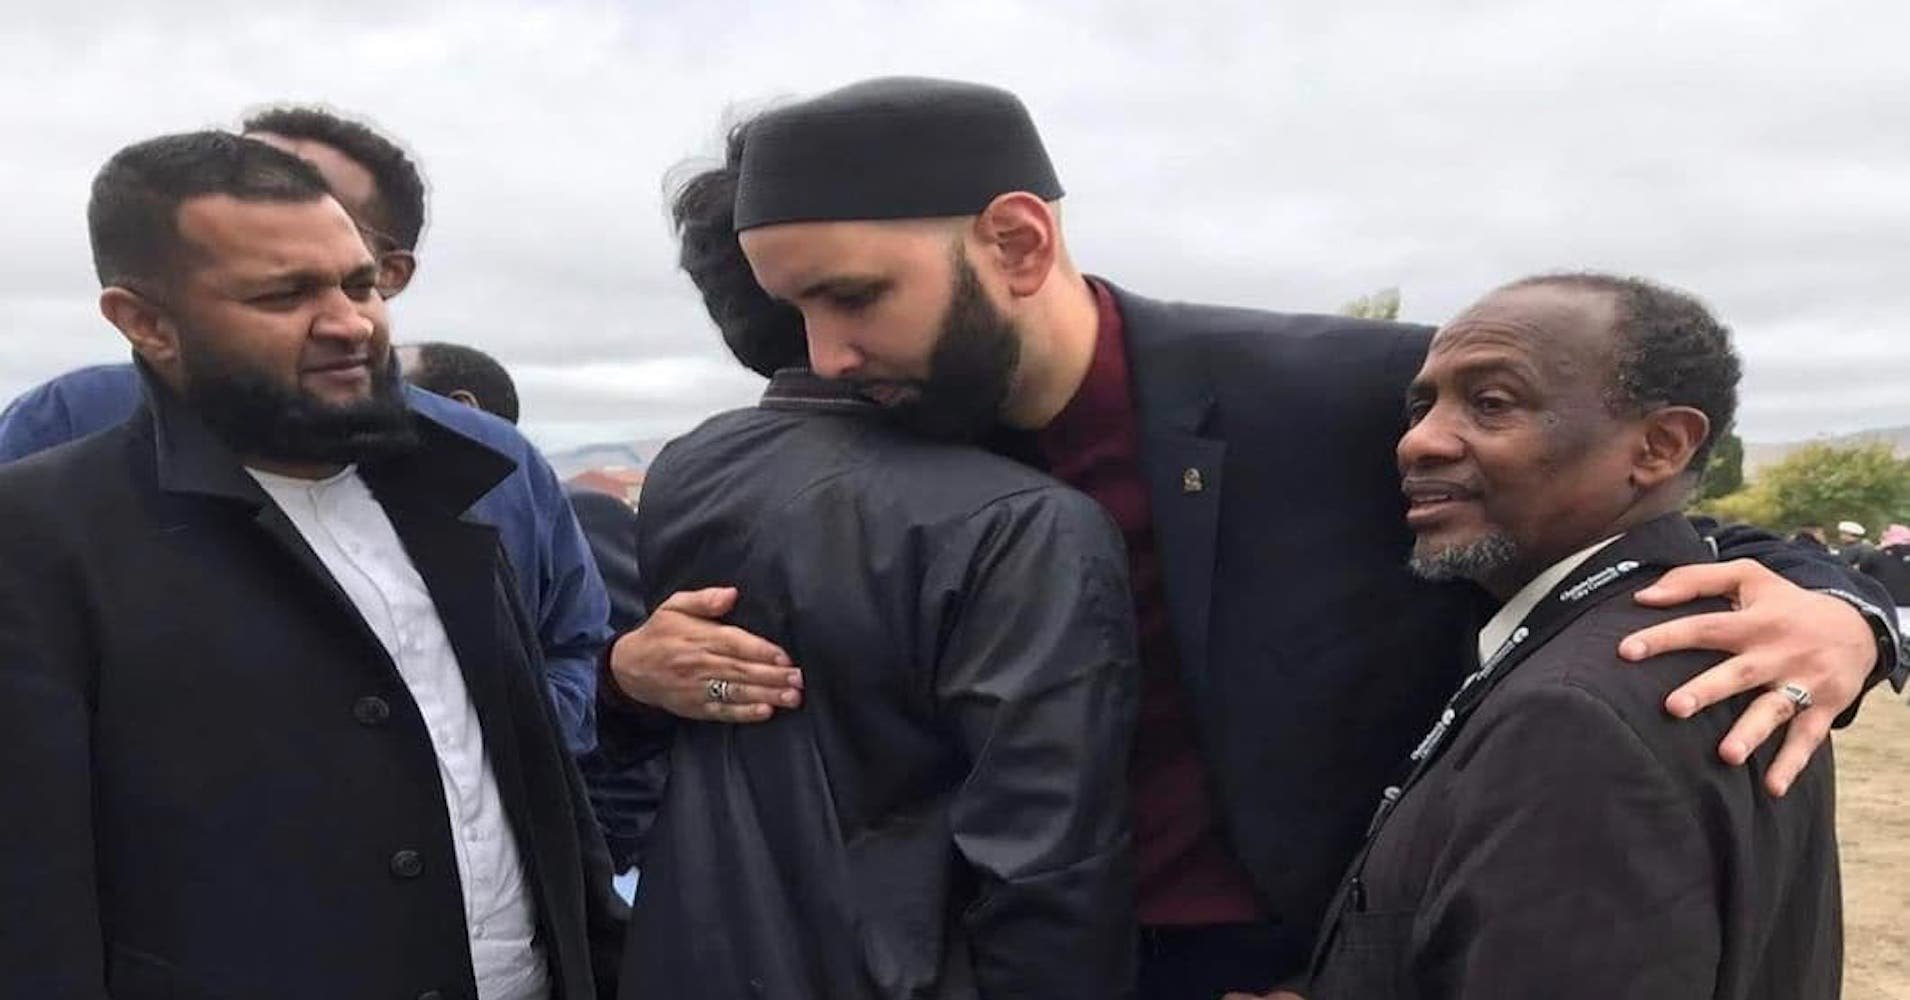 Islamophobia kills. I watched this with my own eyes when I helped bury New Zealand victims.